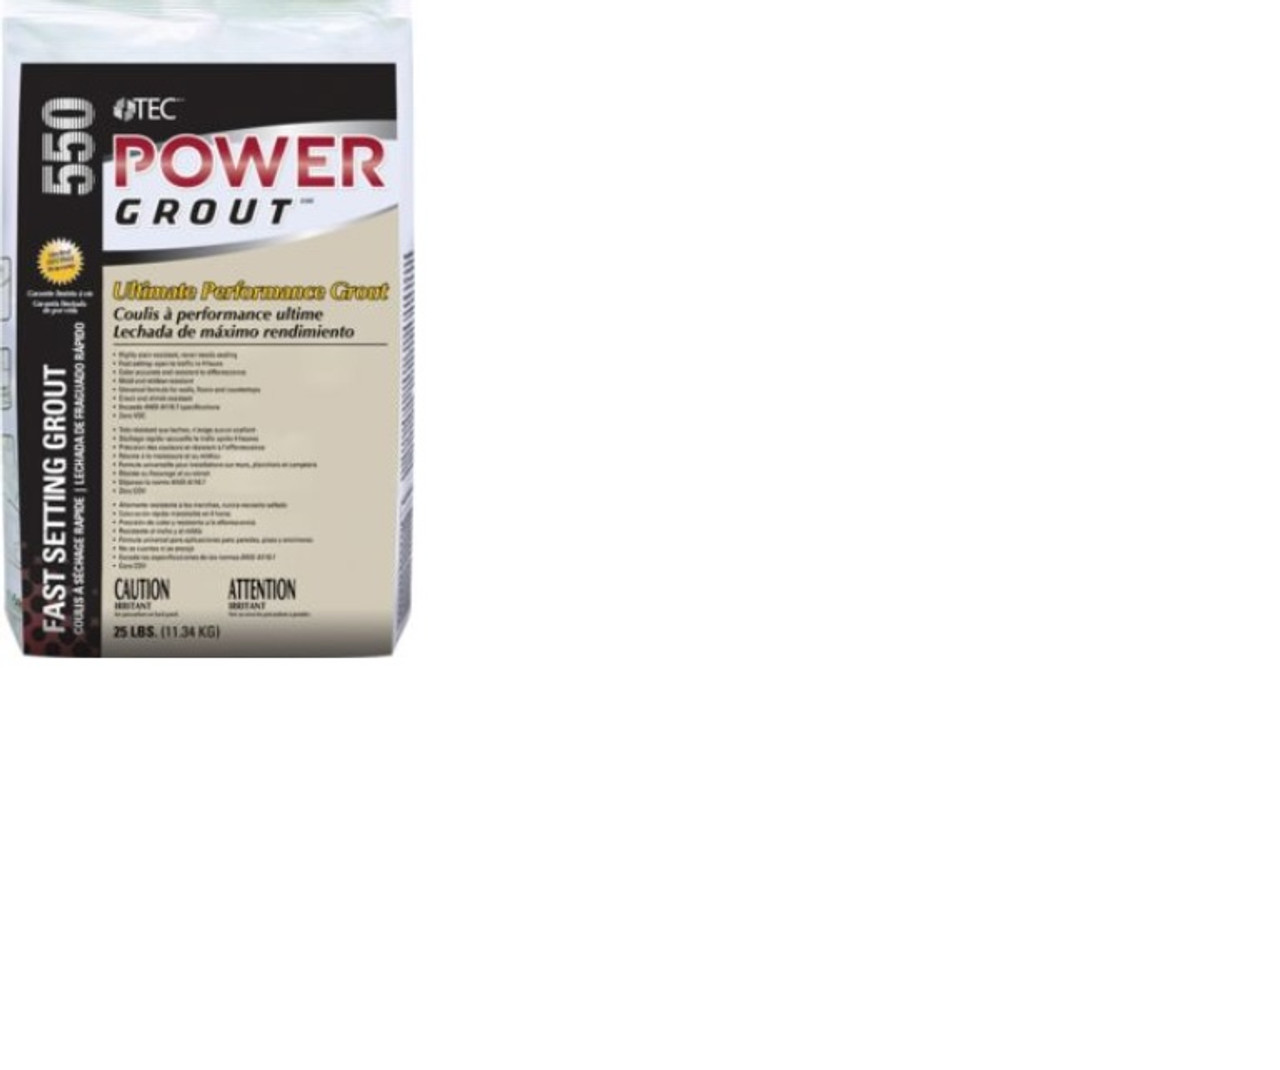 TEC POWER GROUT - FREE SHIPPING